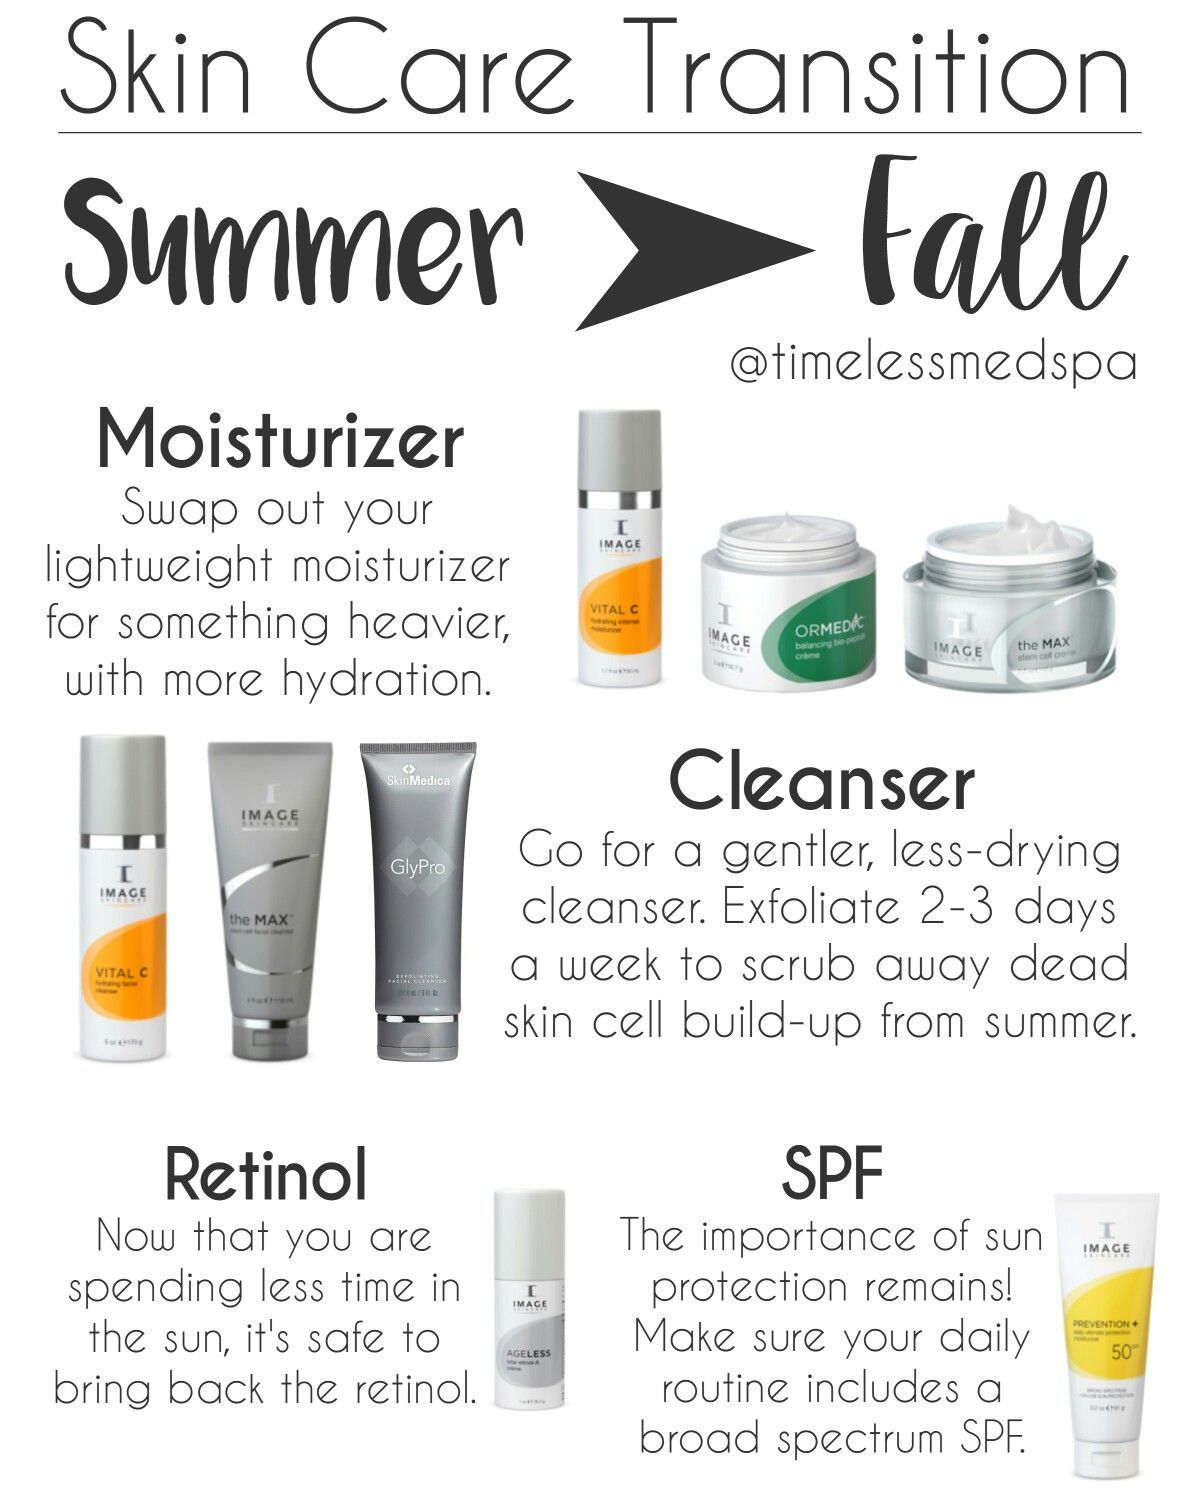 Tips To Transition Your Skin Care Routine From Summer To Fall Skincare Skin Imageskincare Nothingbut Autumn Skincare Image Skincare Best Skin Care Routine